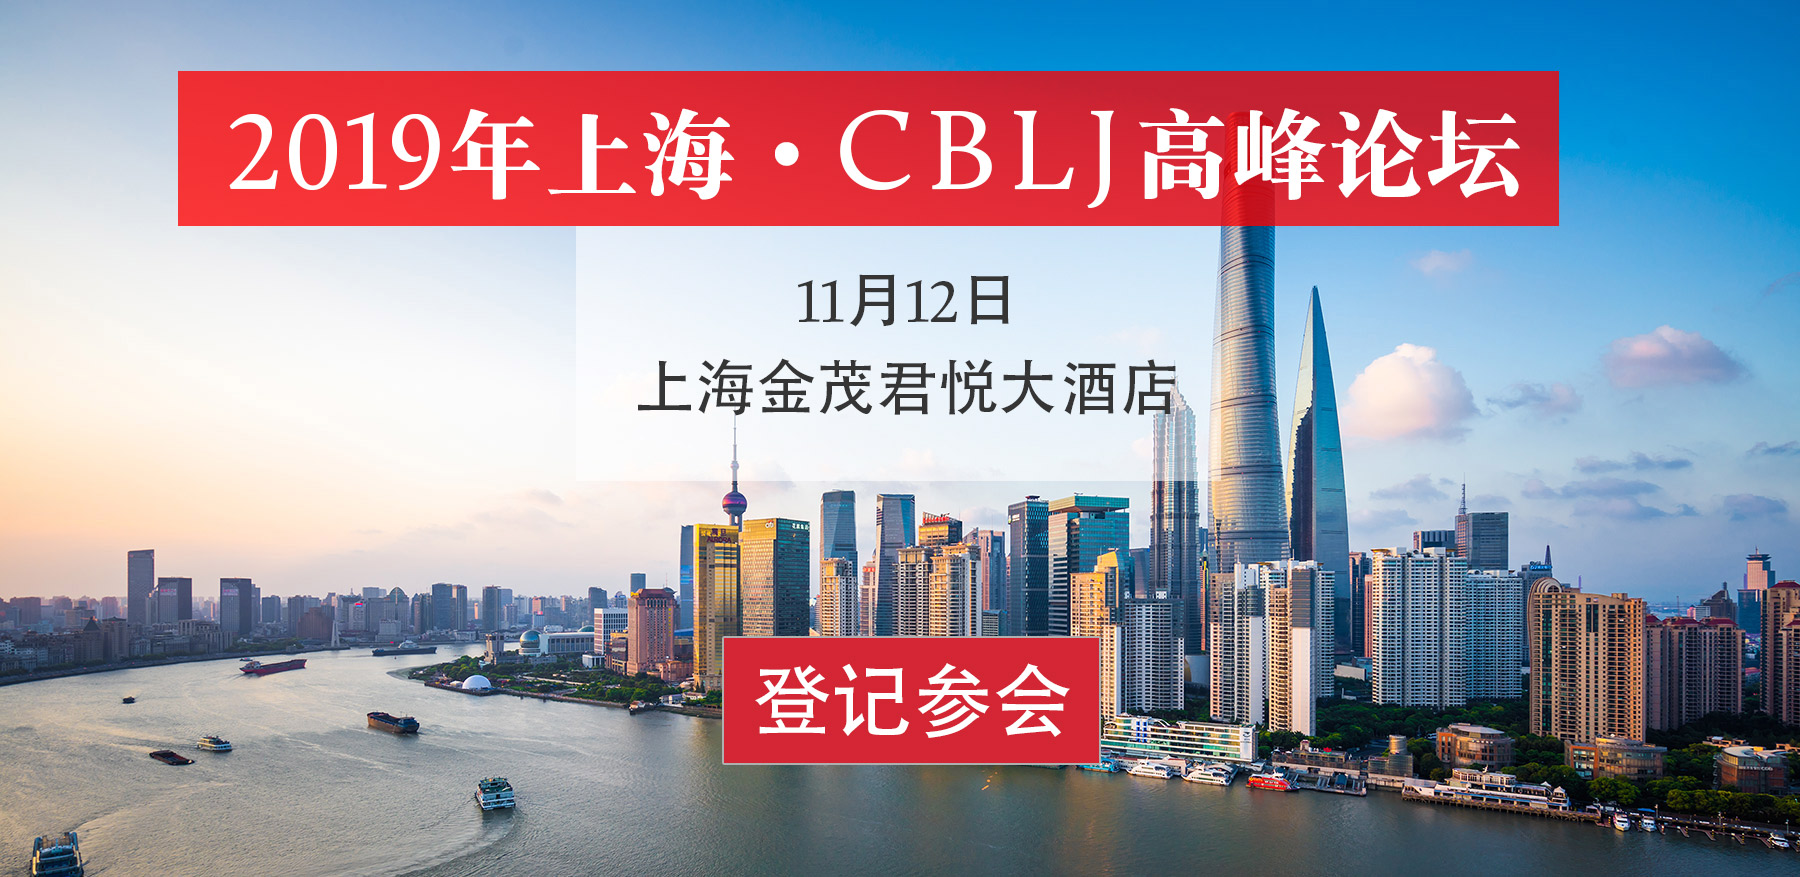 Shanghai-leading-lawyers-law-firms-cross-border-investment-CBLJ-Forum-0924-2